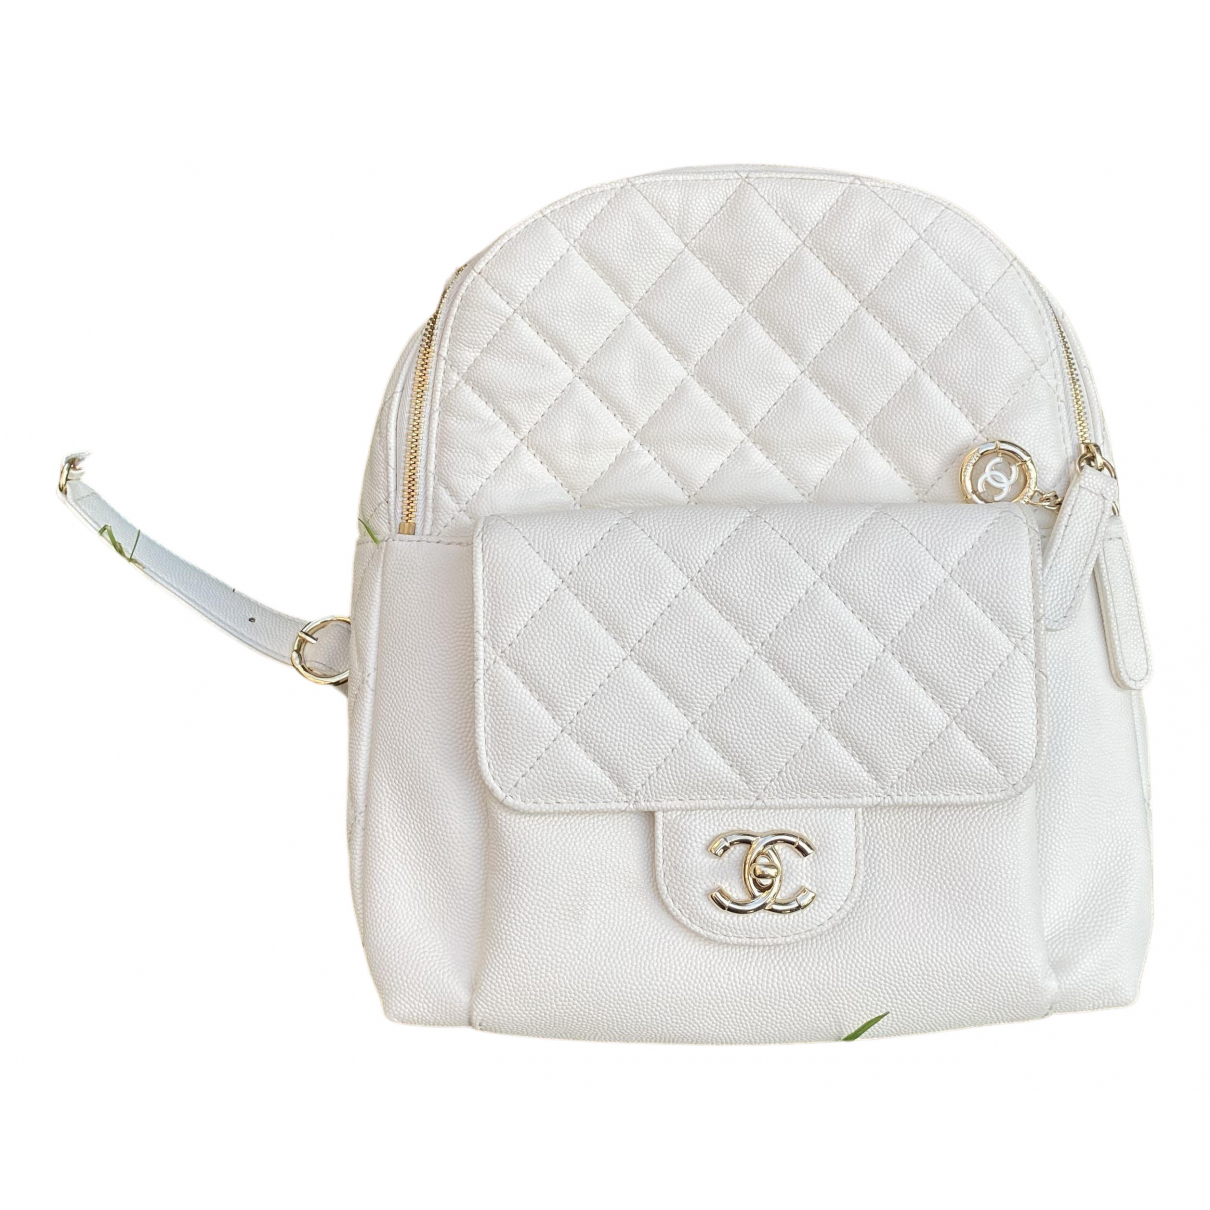 Chanel N White Leather backpack for Women N